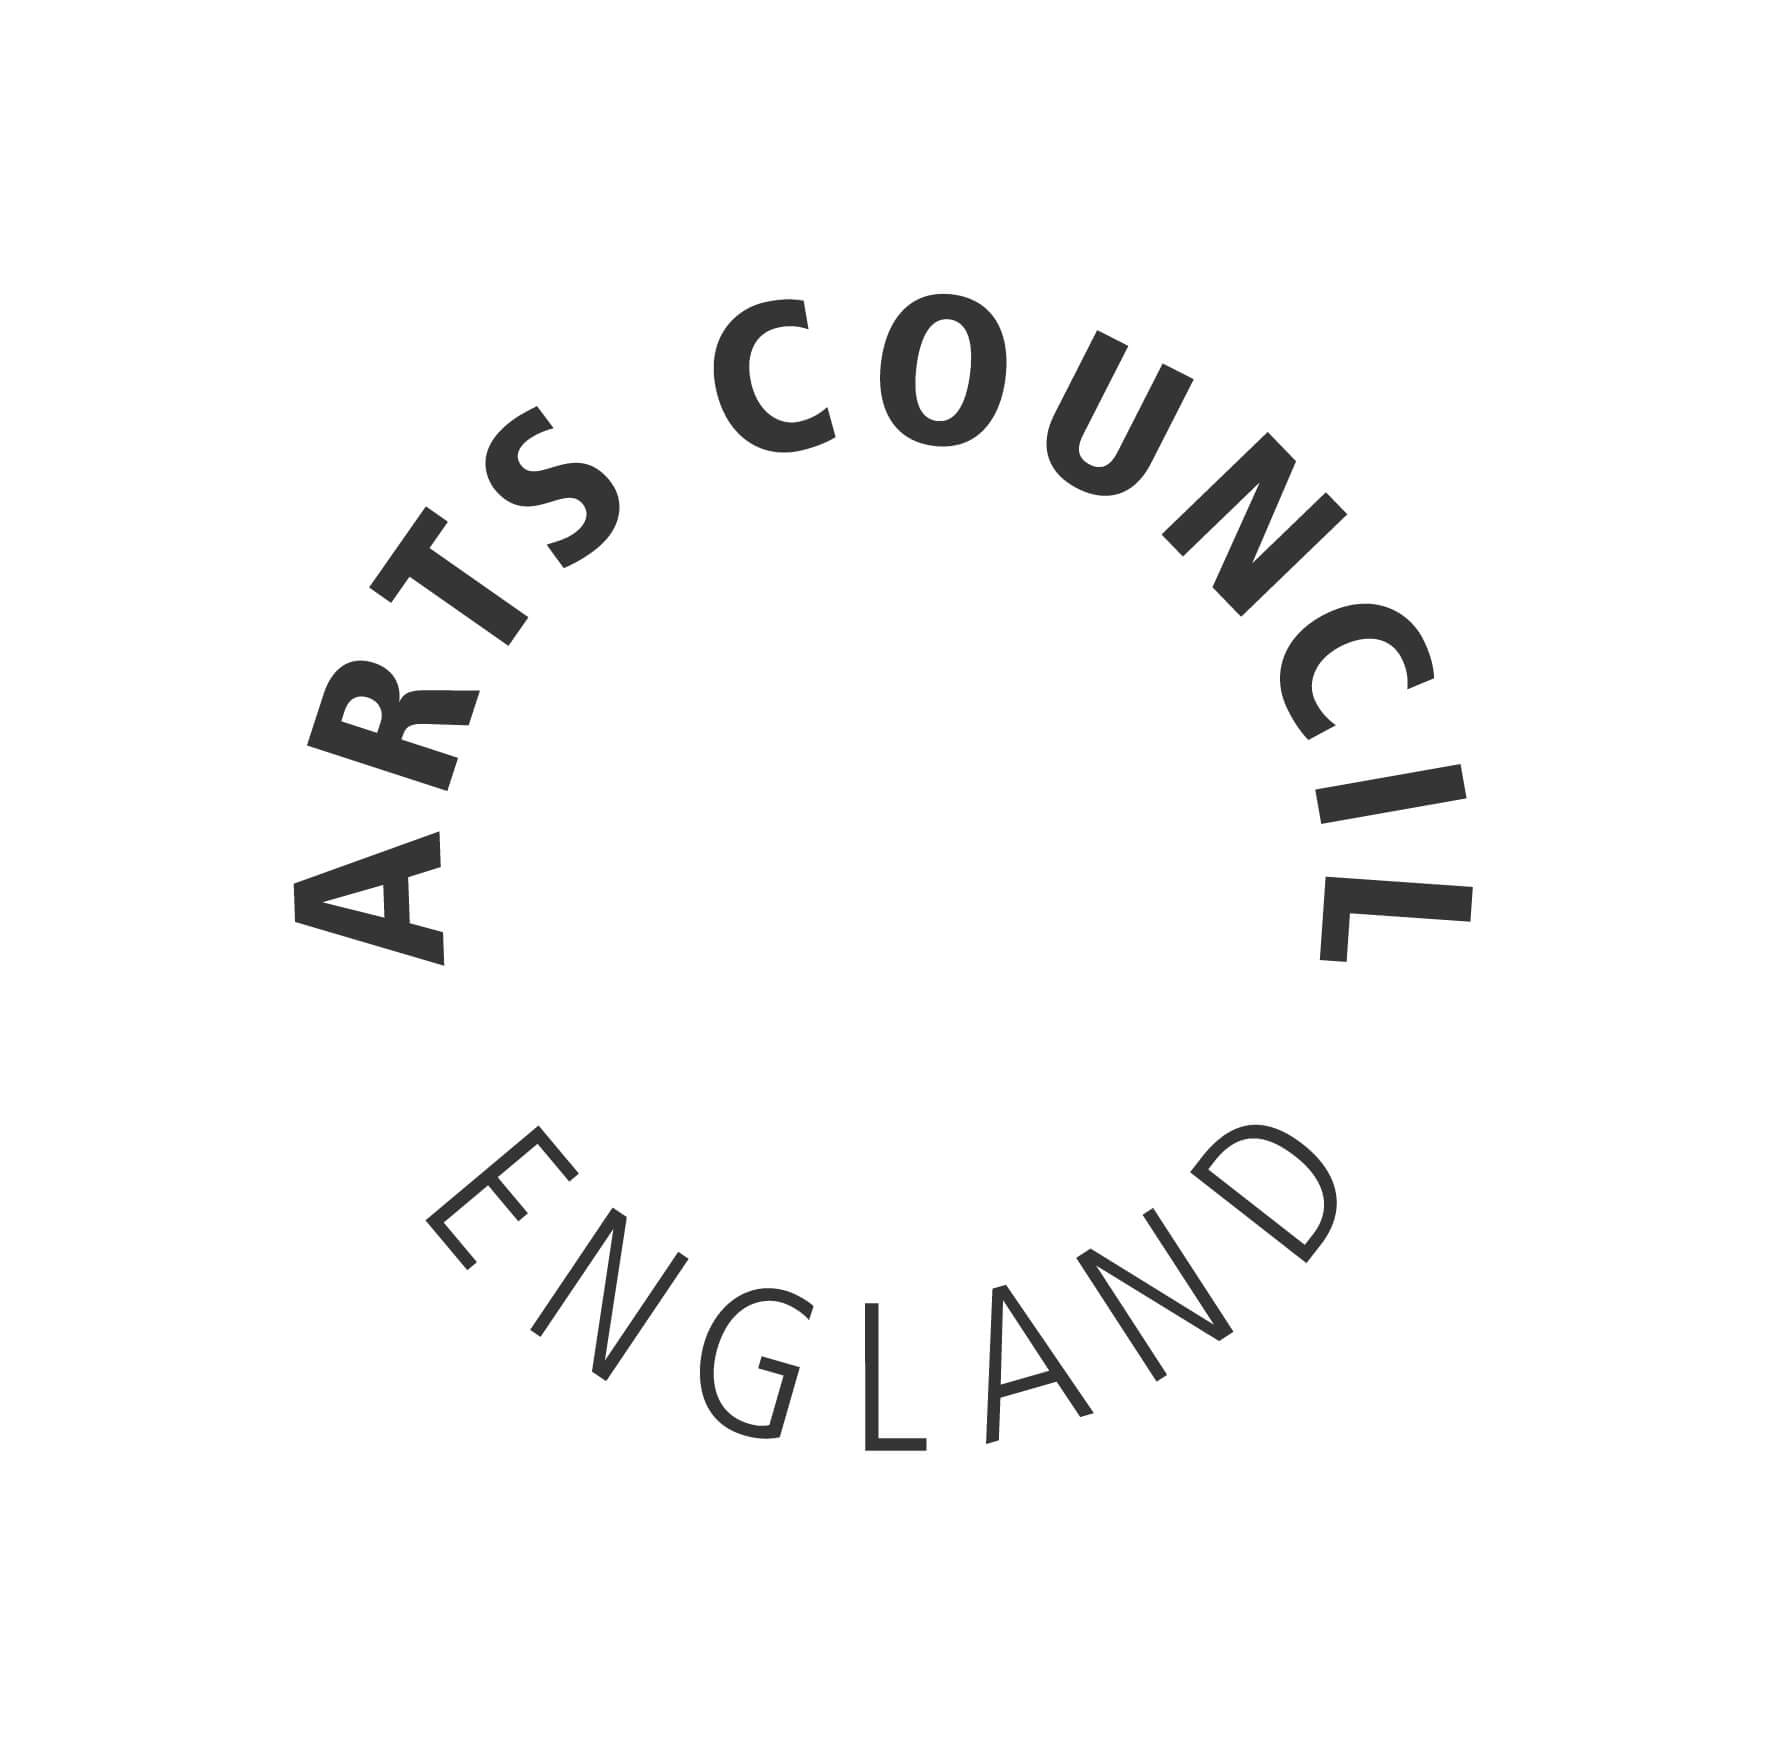 Arts-council-logo.jpg